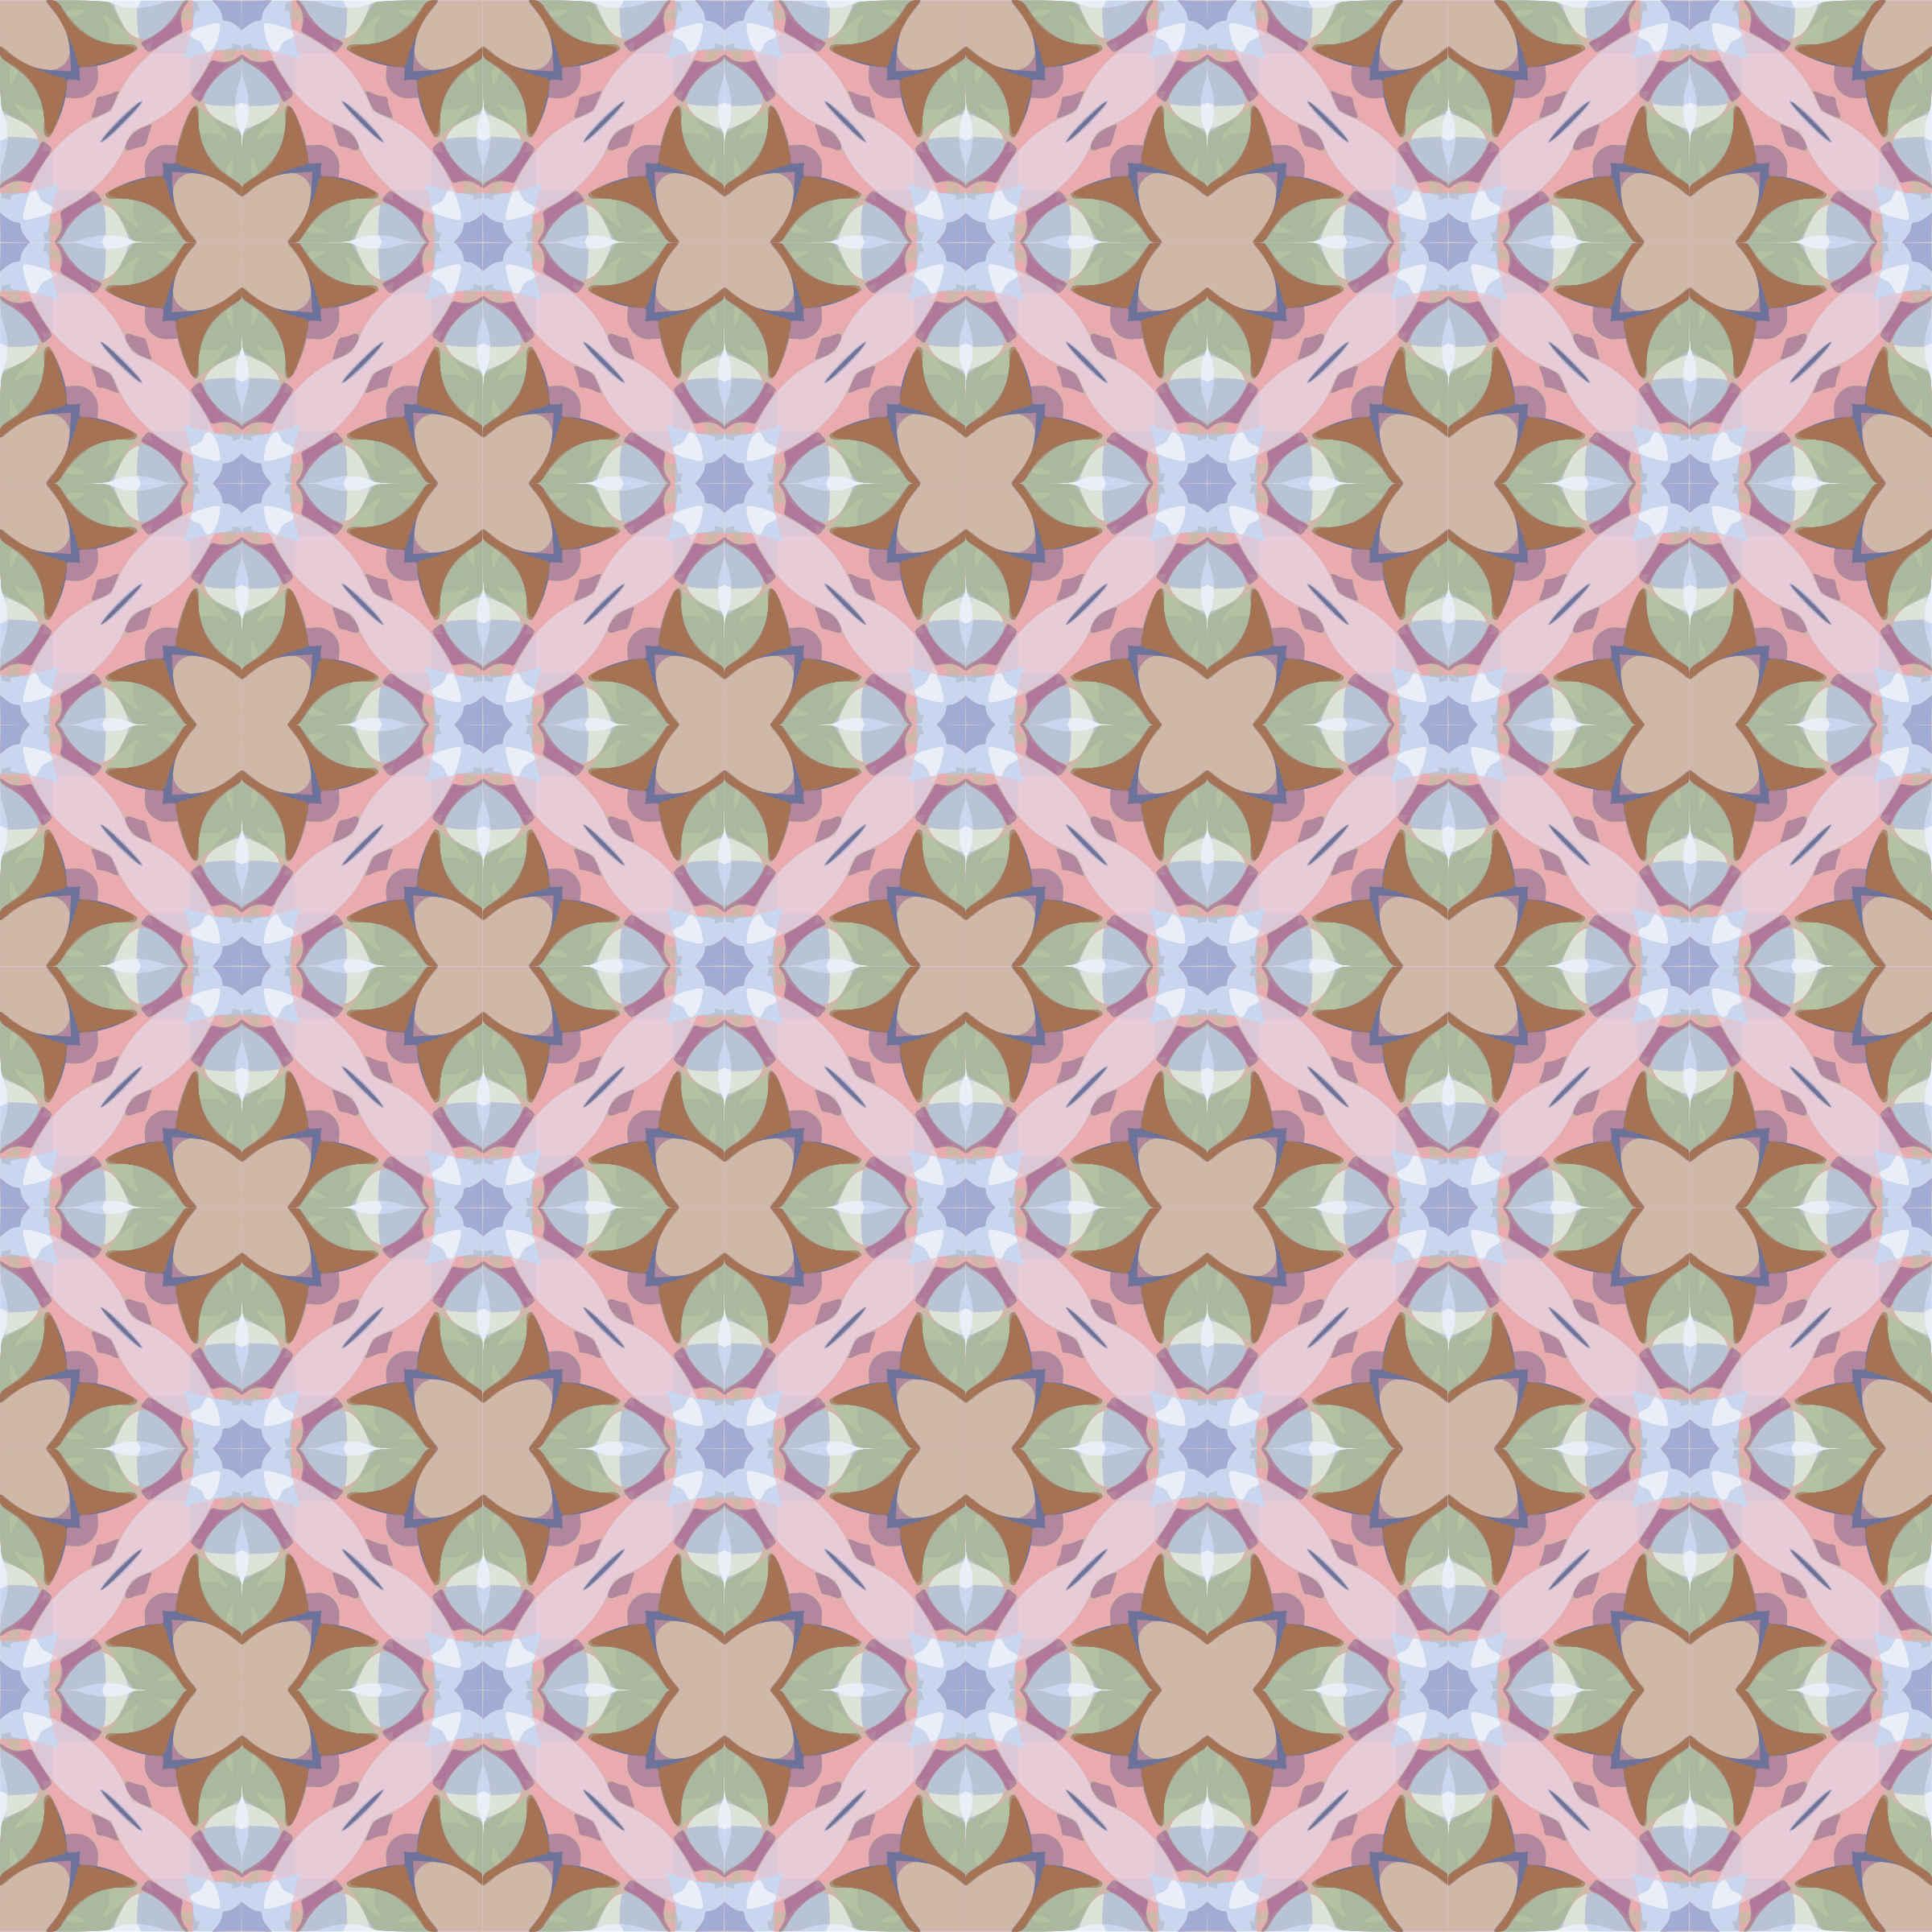 Background pattern 143 by Firkin